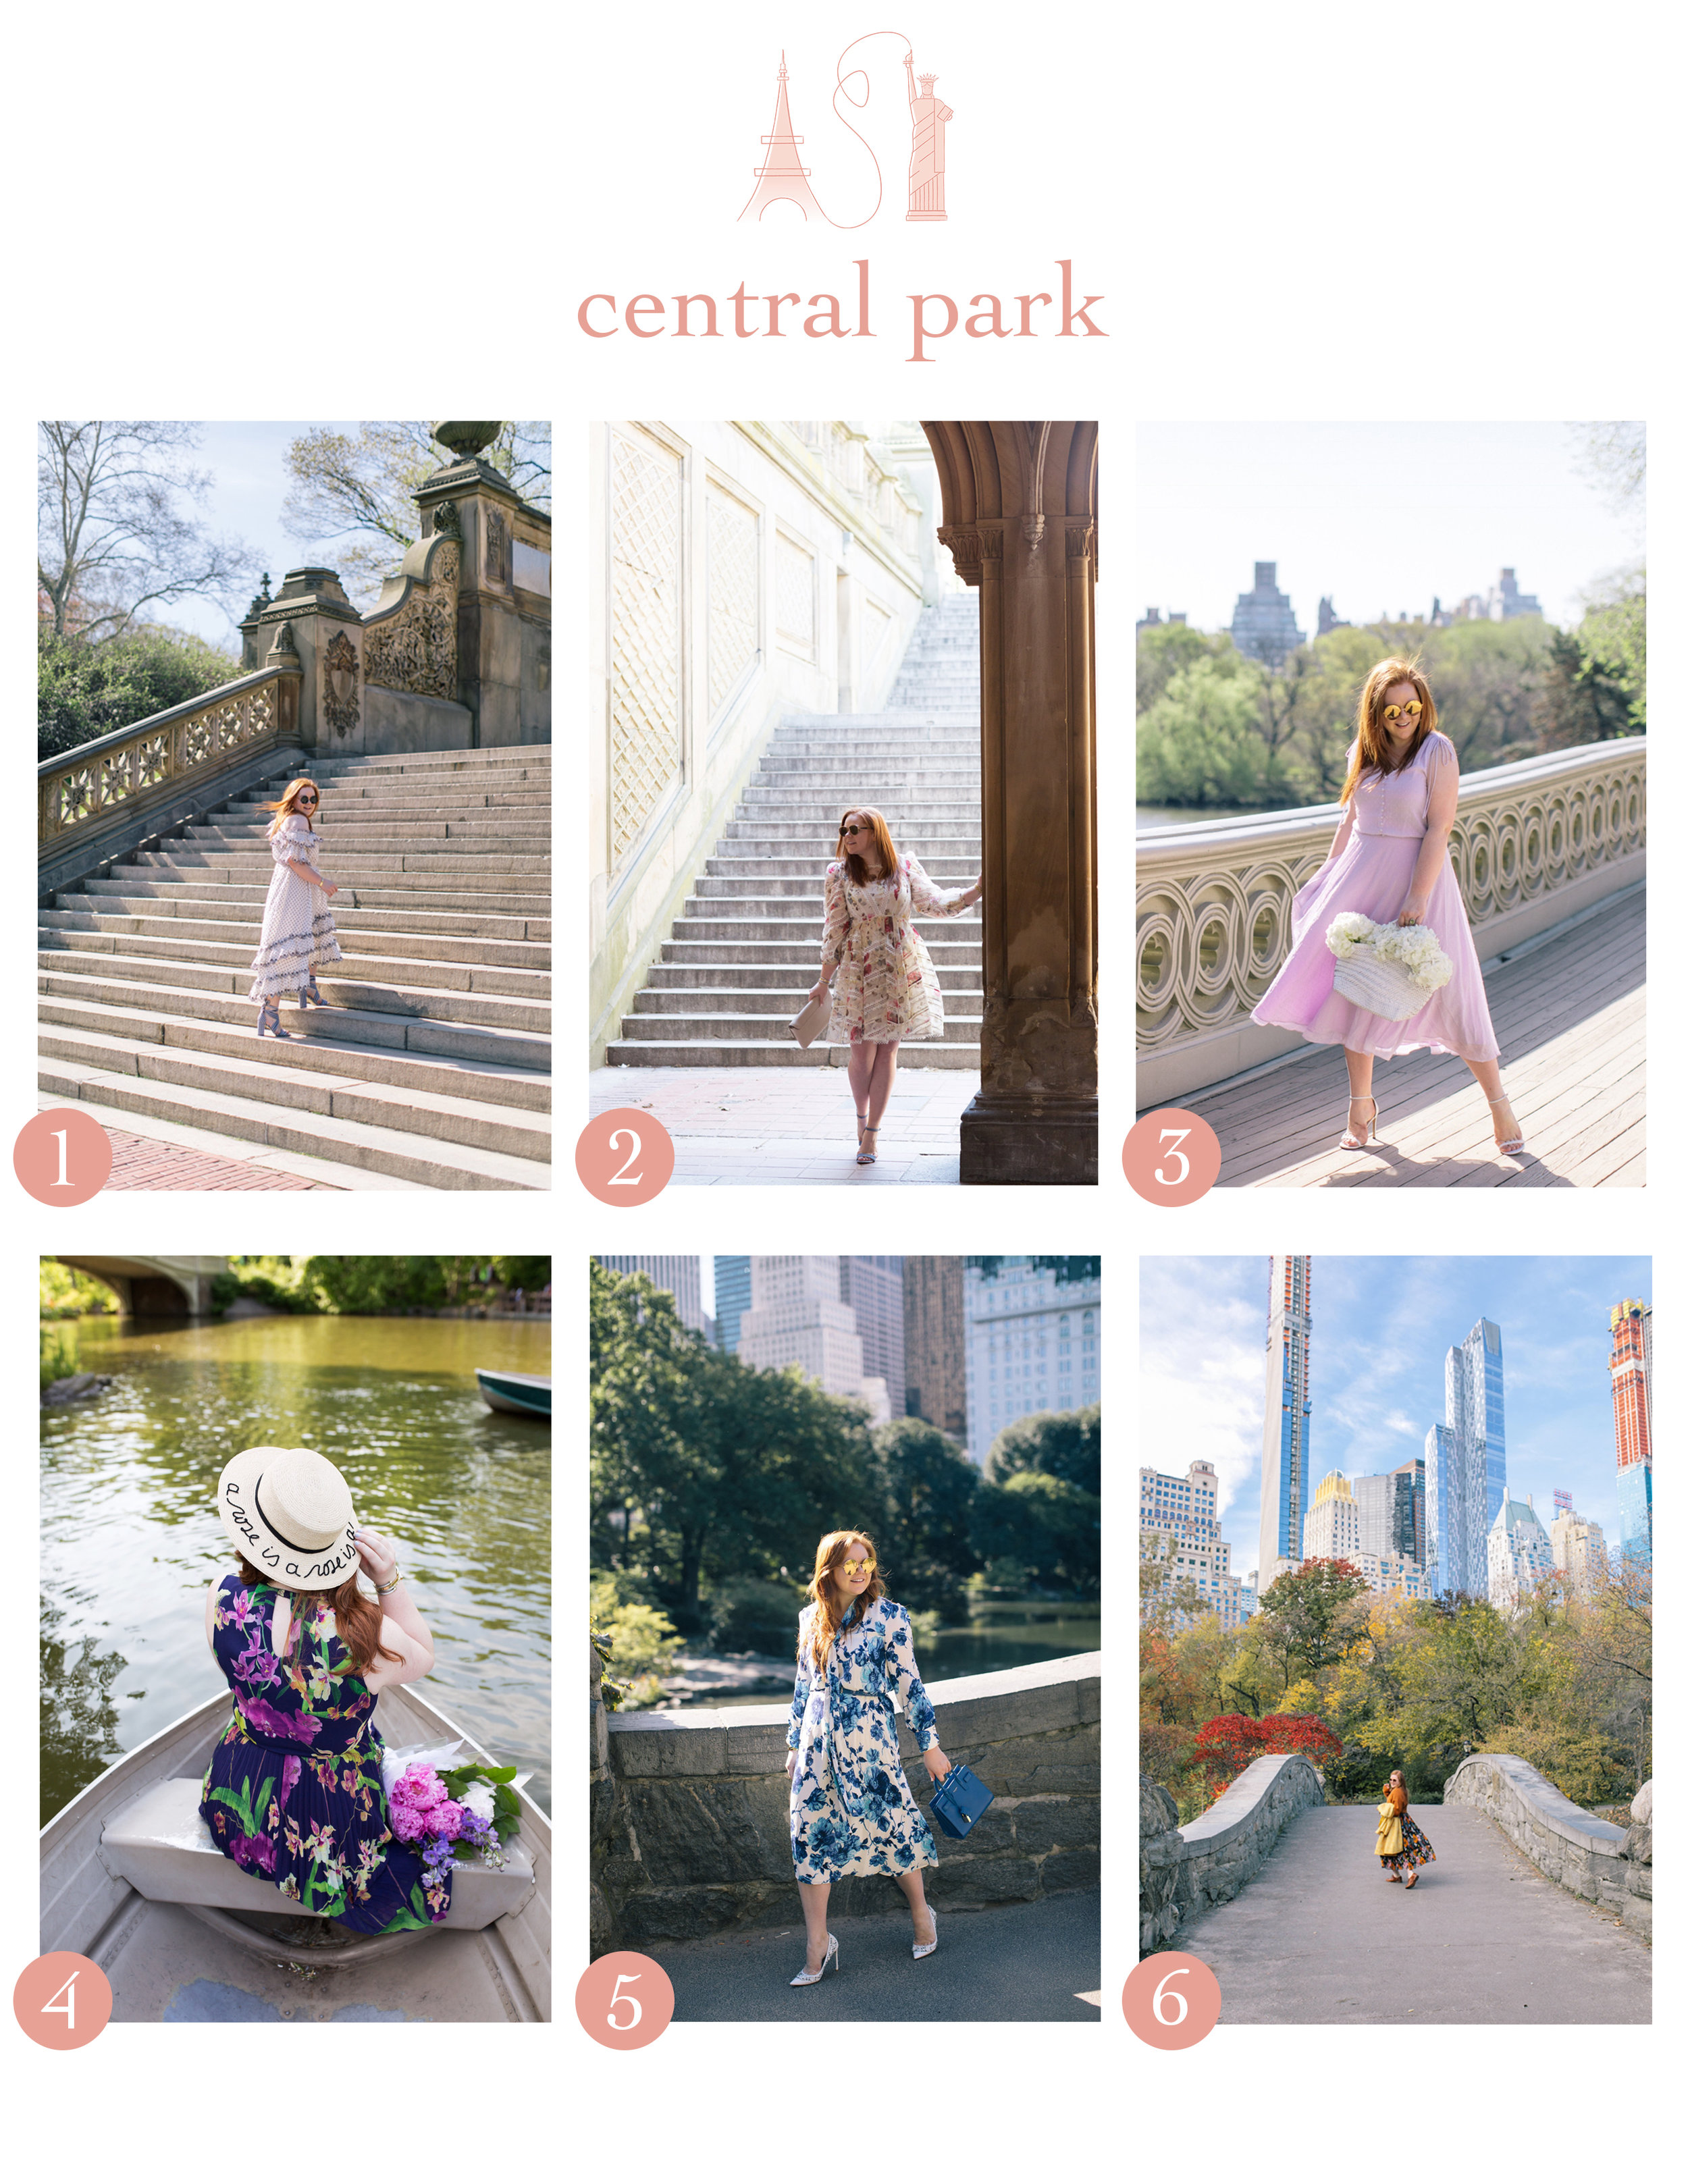 central_park_photo_locations.jpg